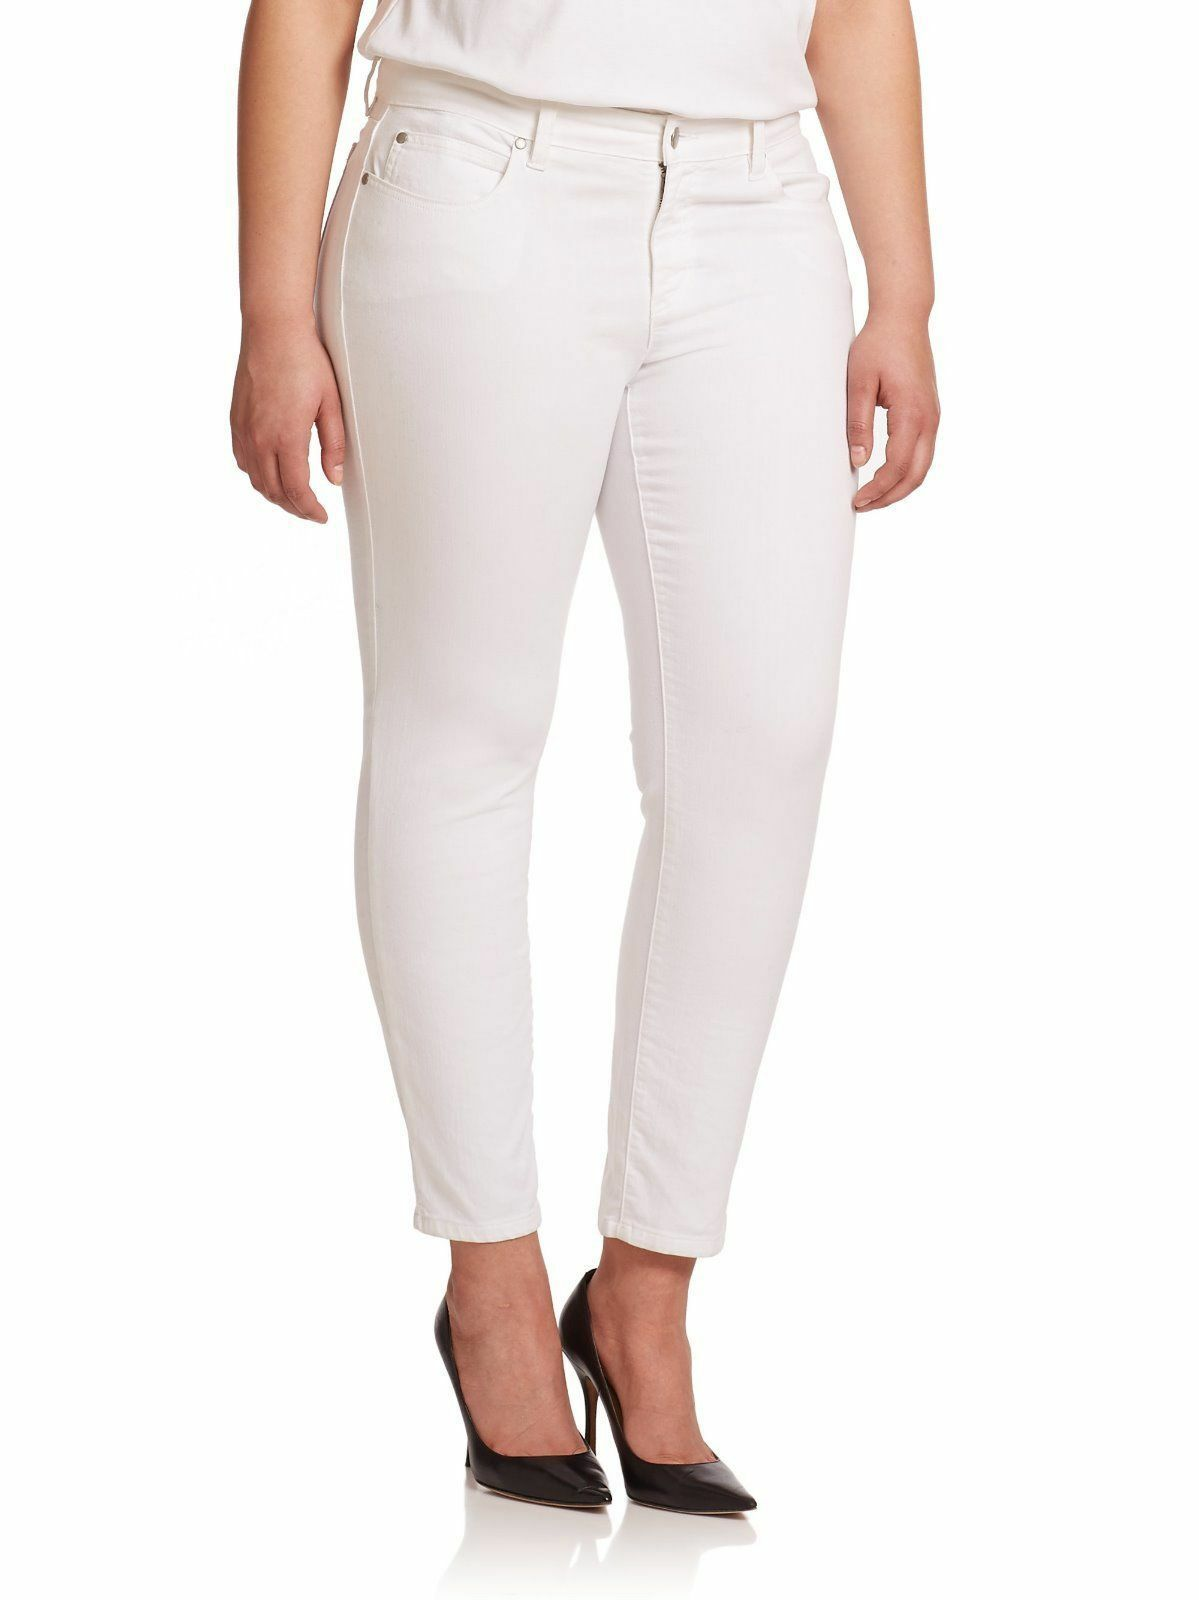 178 EILEEN FISHER NEW Ivory Textured Low-Rise Skinny Ankle Jeans.SZ 14